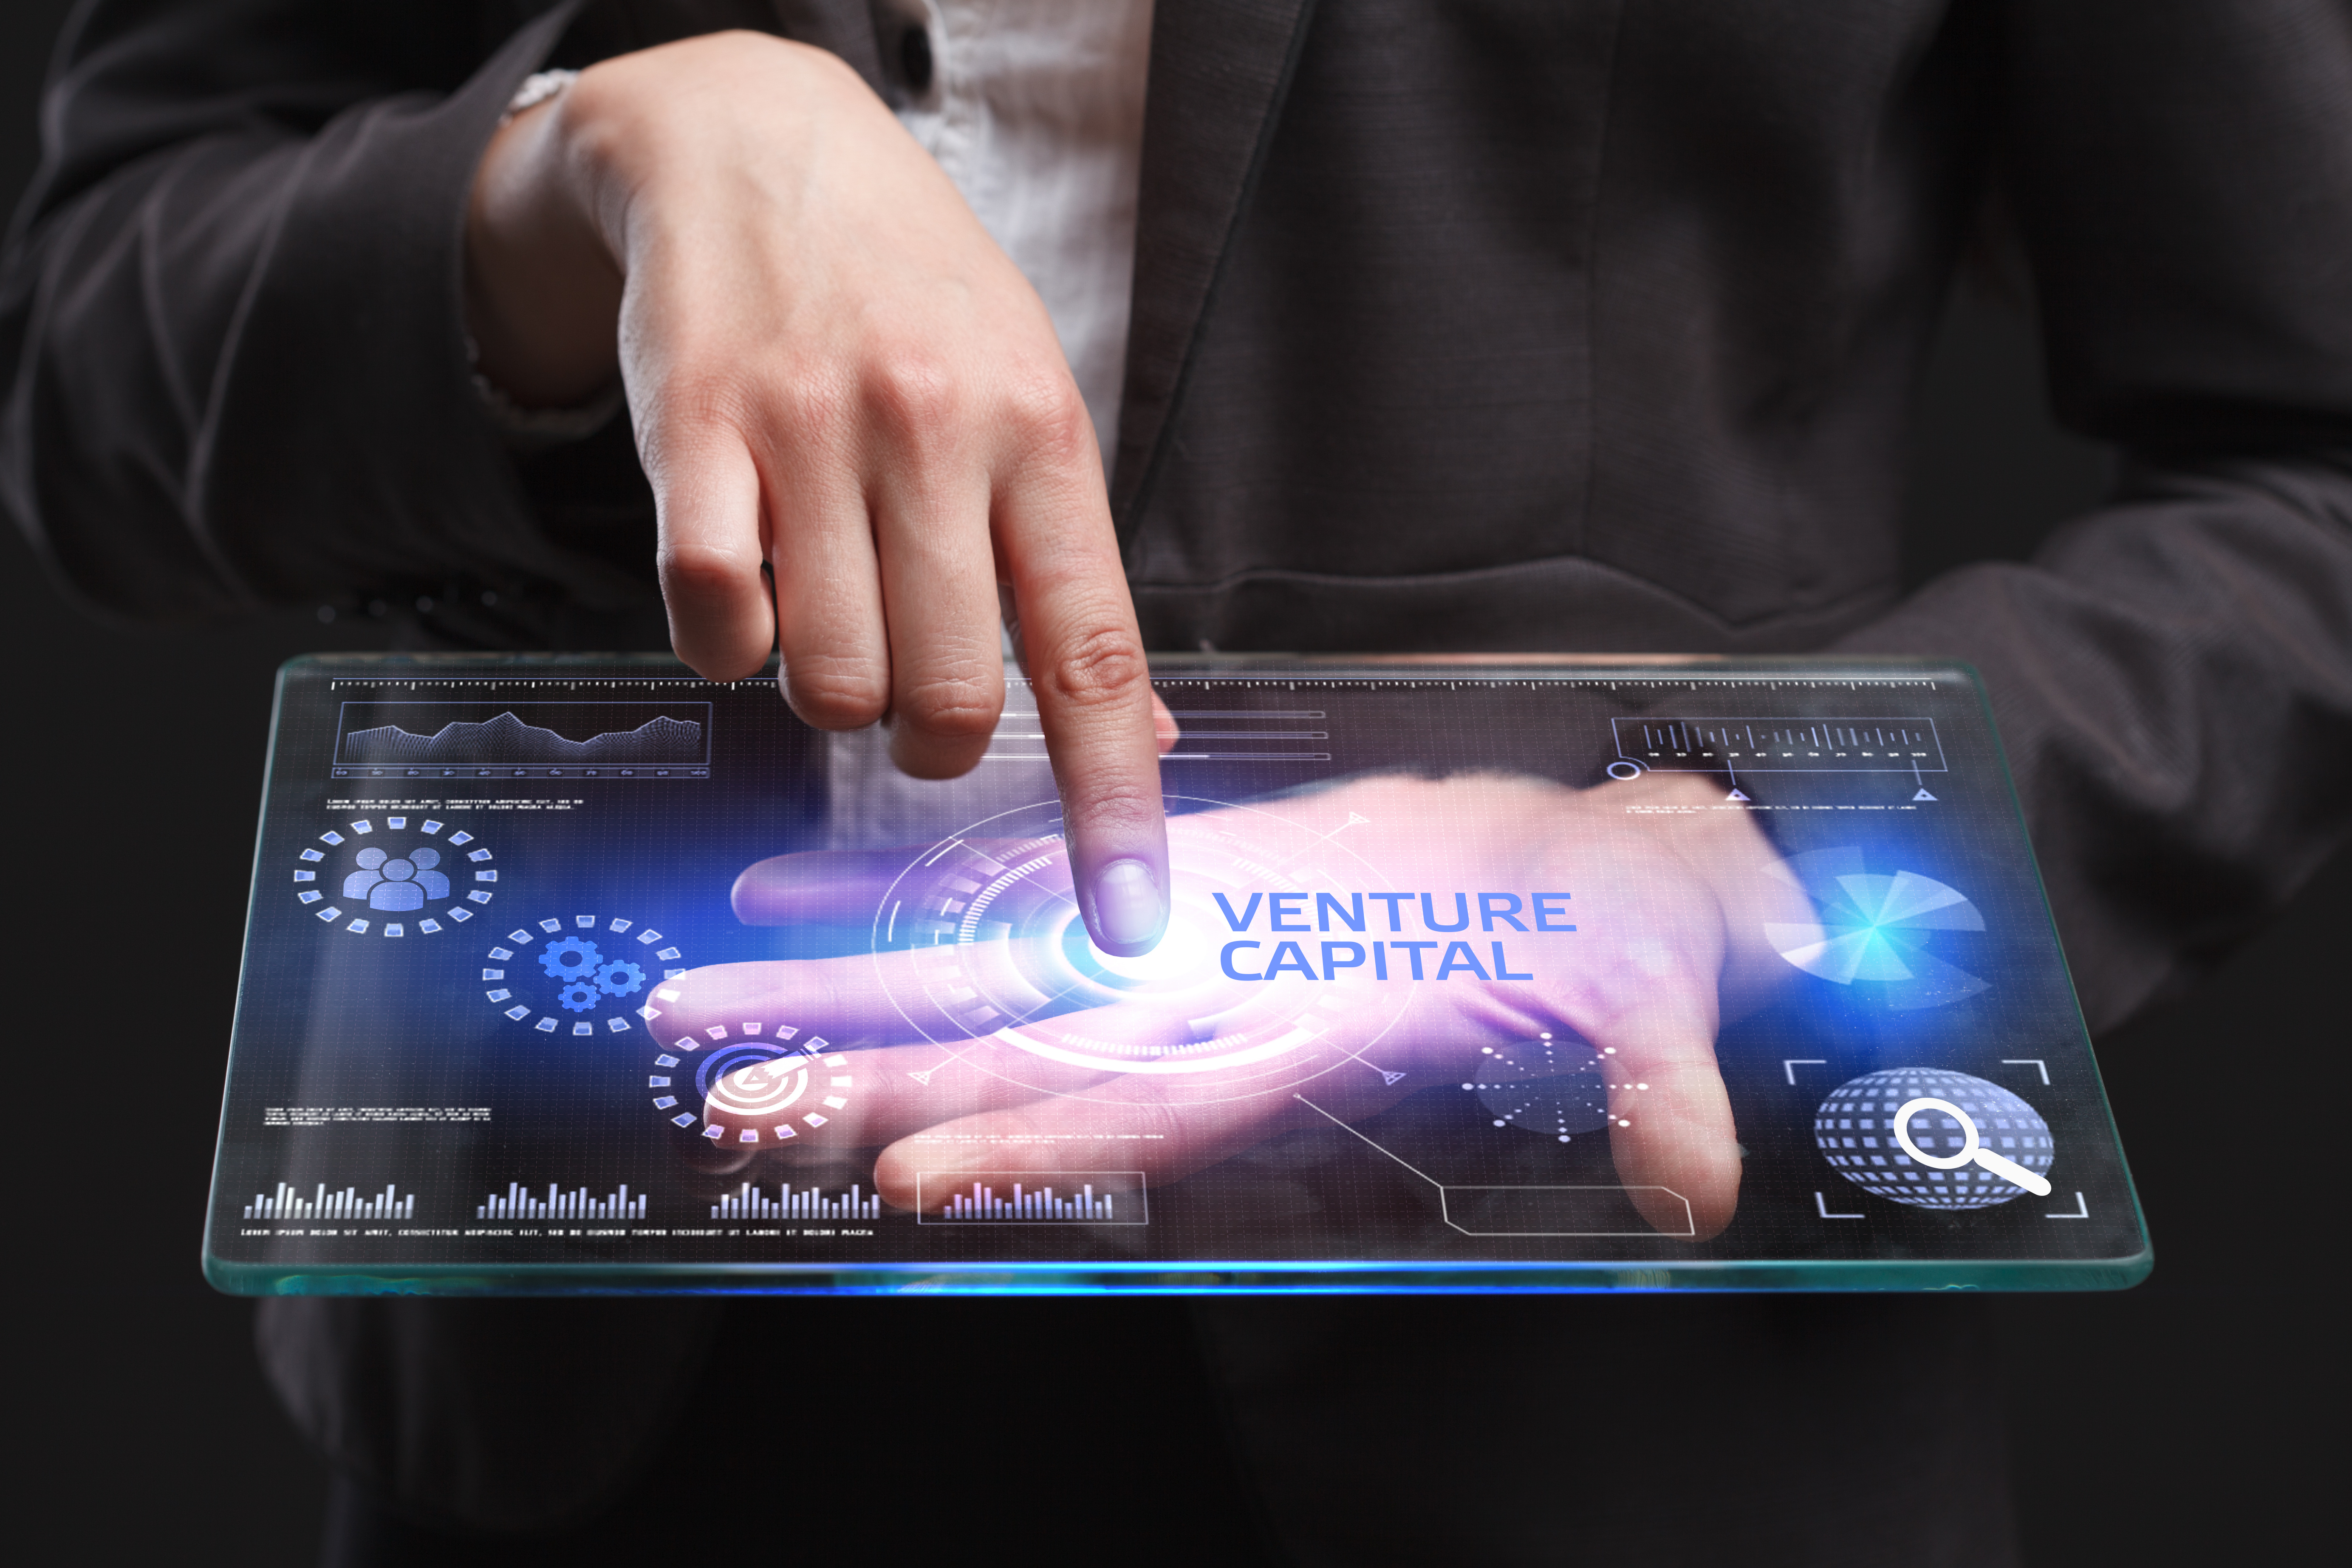 man pointing at venture capital on tablet screen